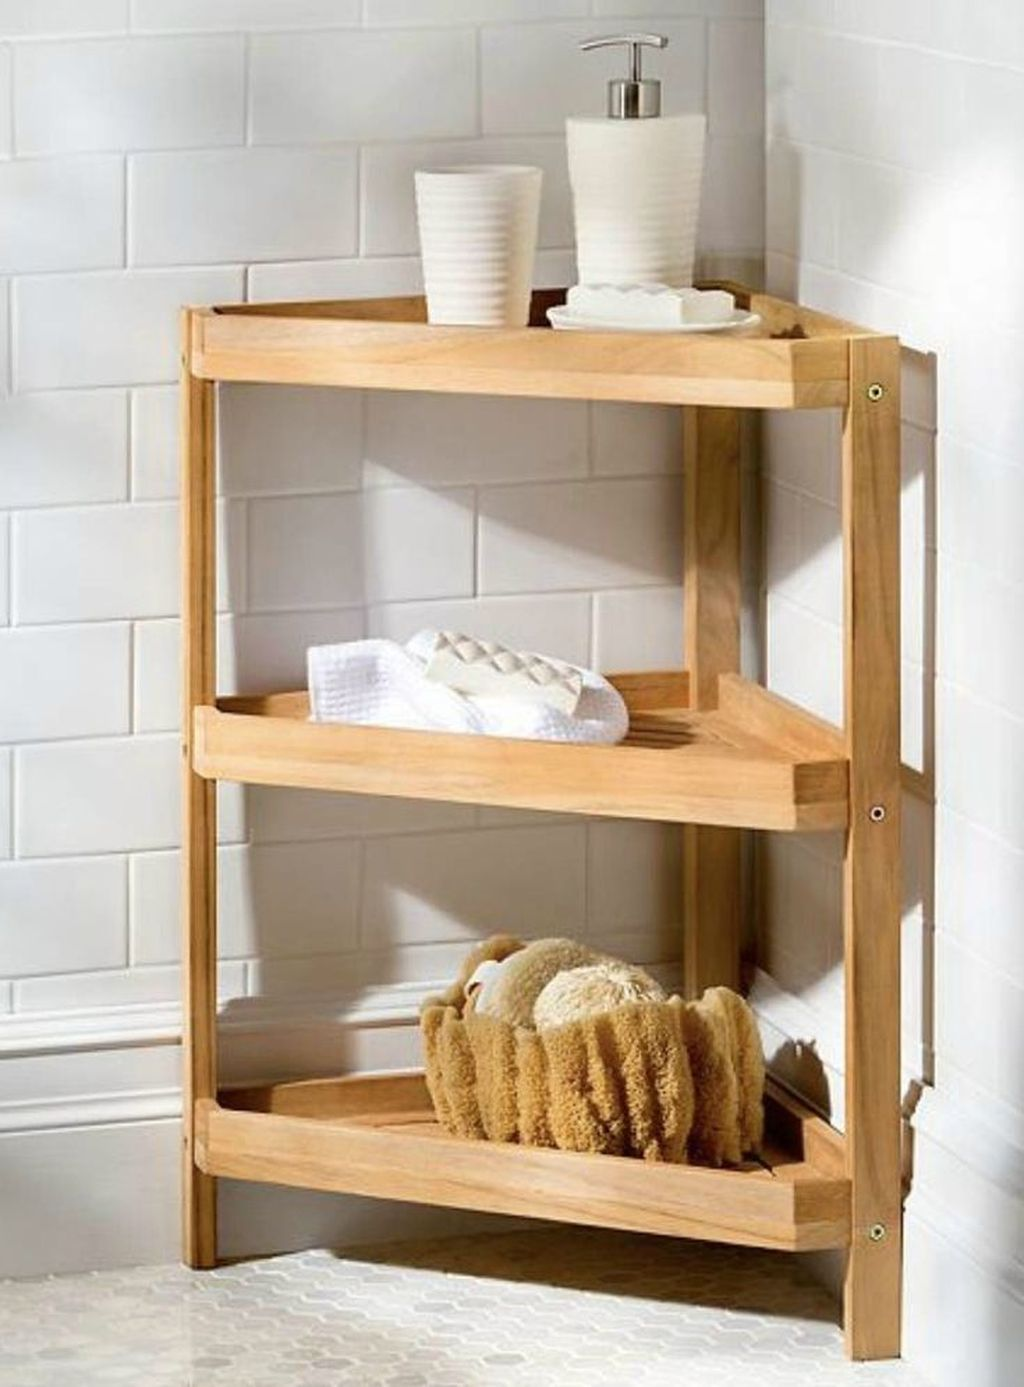 Amazing Bathroom Storage Design Ideas For Small Space 05